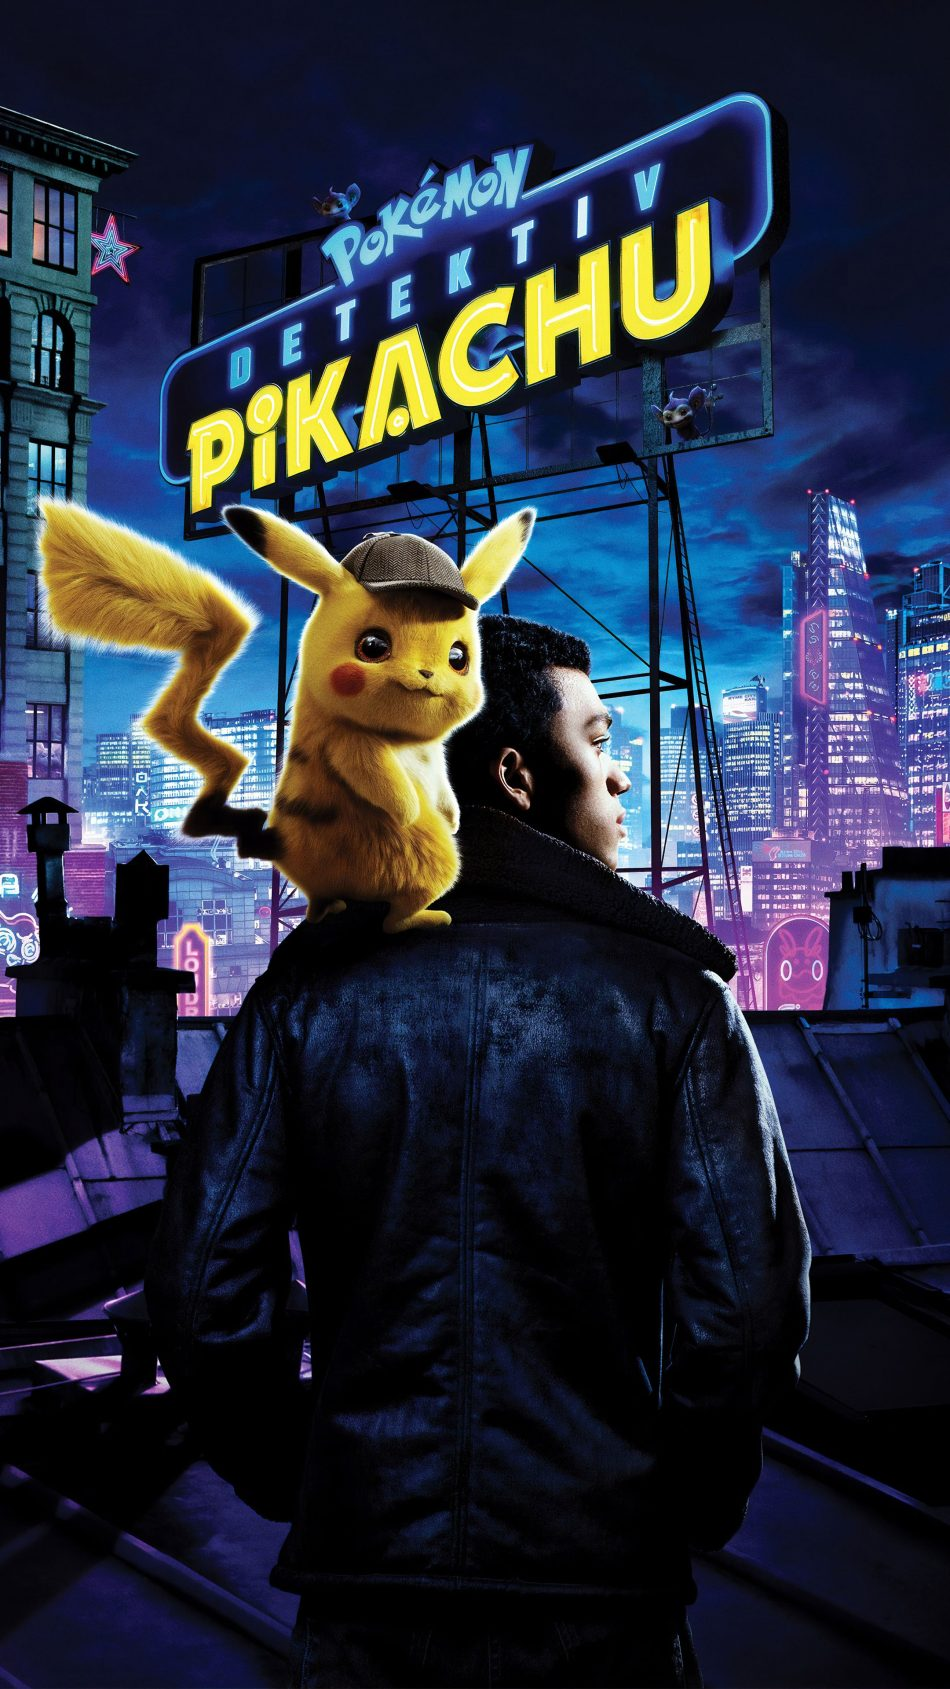 Justice Smith In Pokemon Detective Pikachu 2019 4k Ultra Hd Mobile